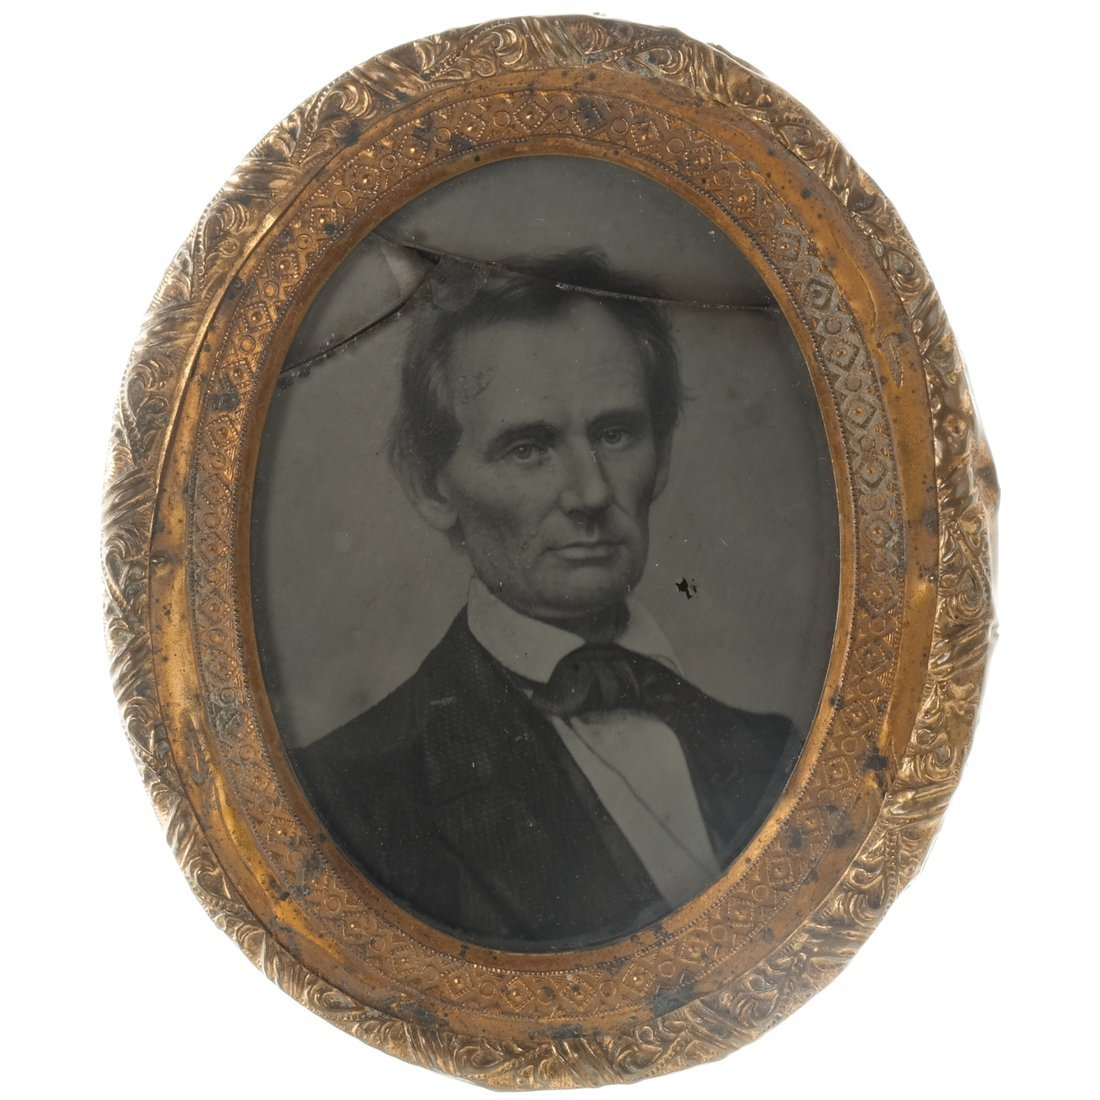 A. Lincoln 1860 George Clark Ambrotype Pin